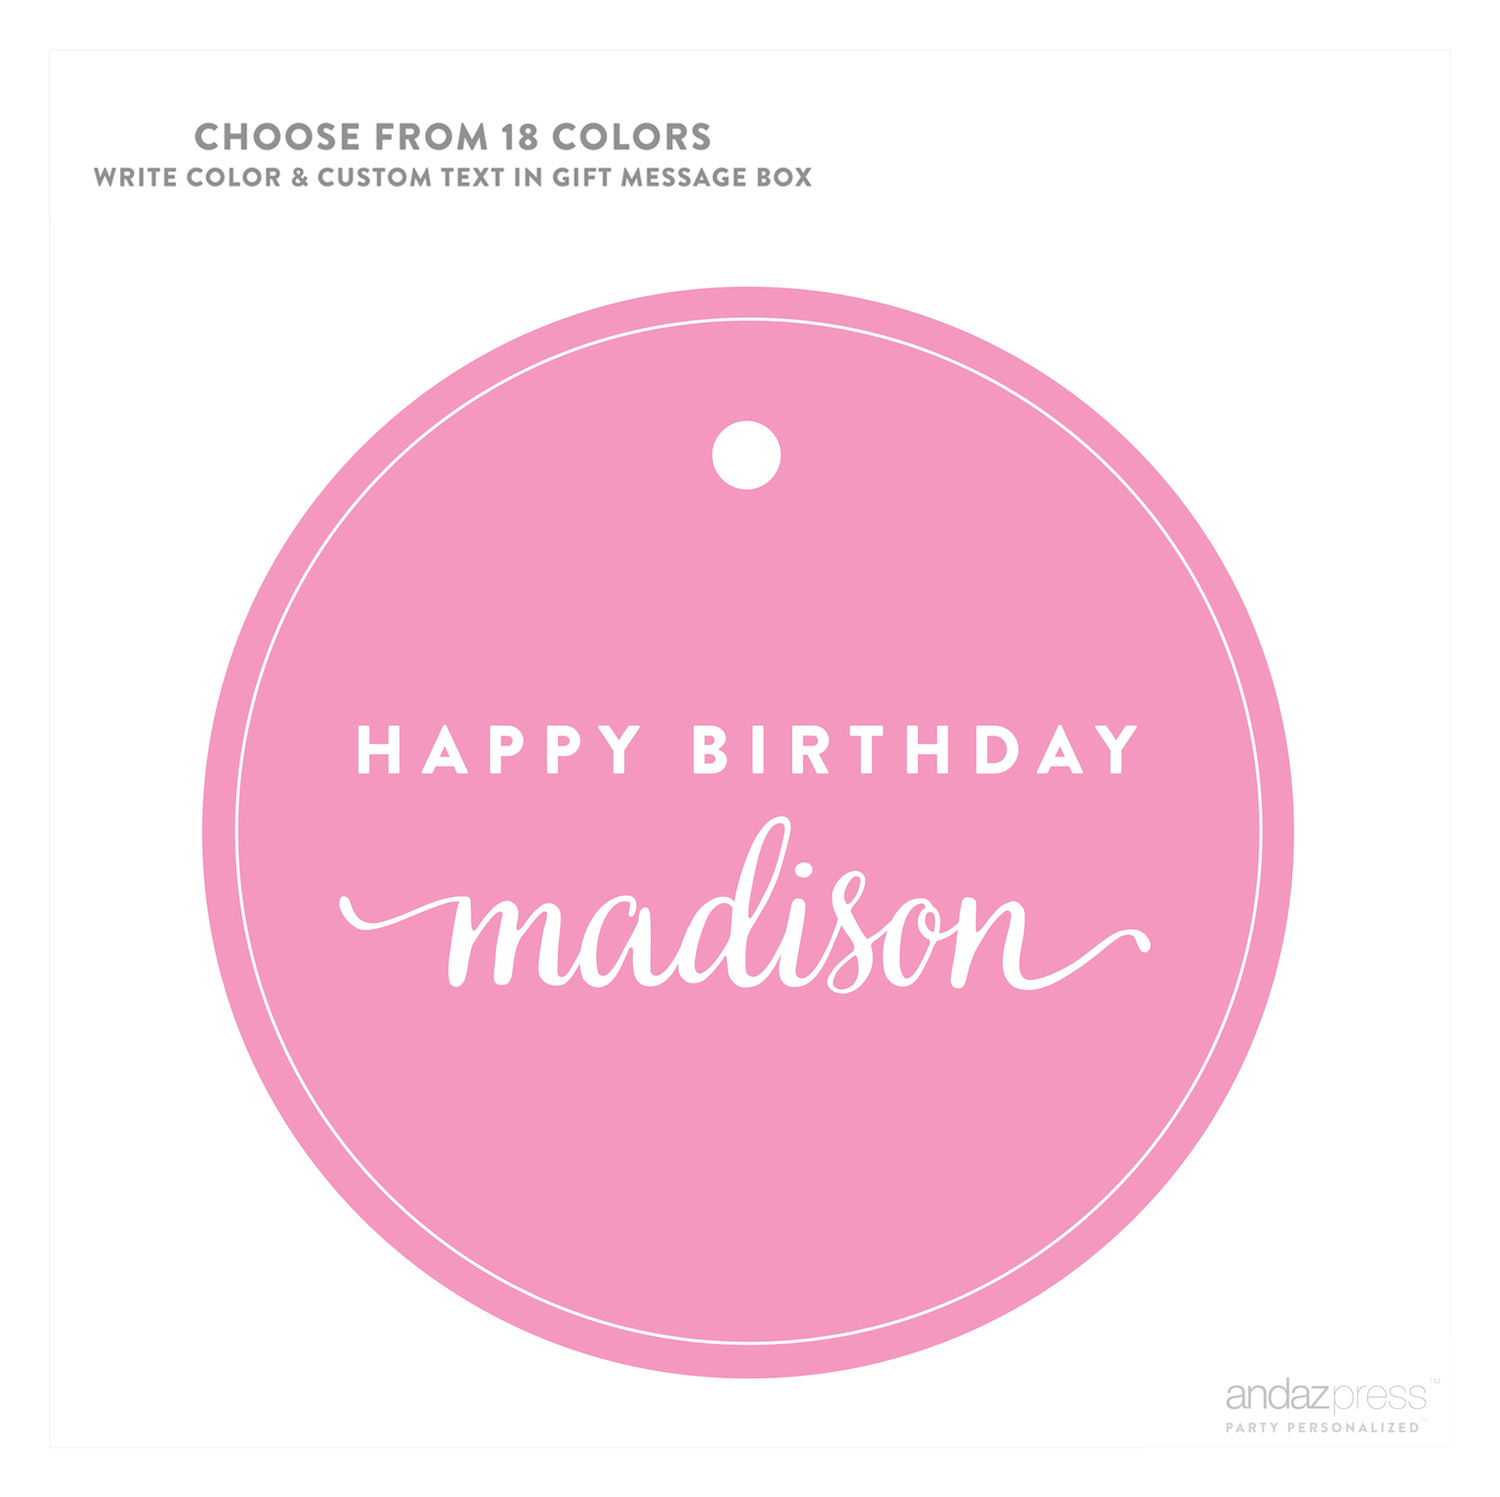 Name APC59770 Andaz Press Personalized Circle Gift Tags Birthday